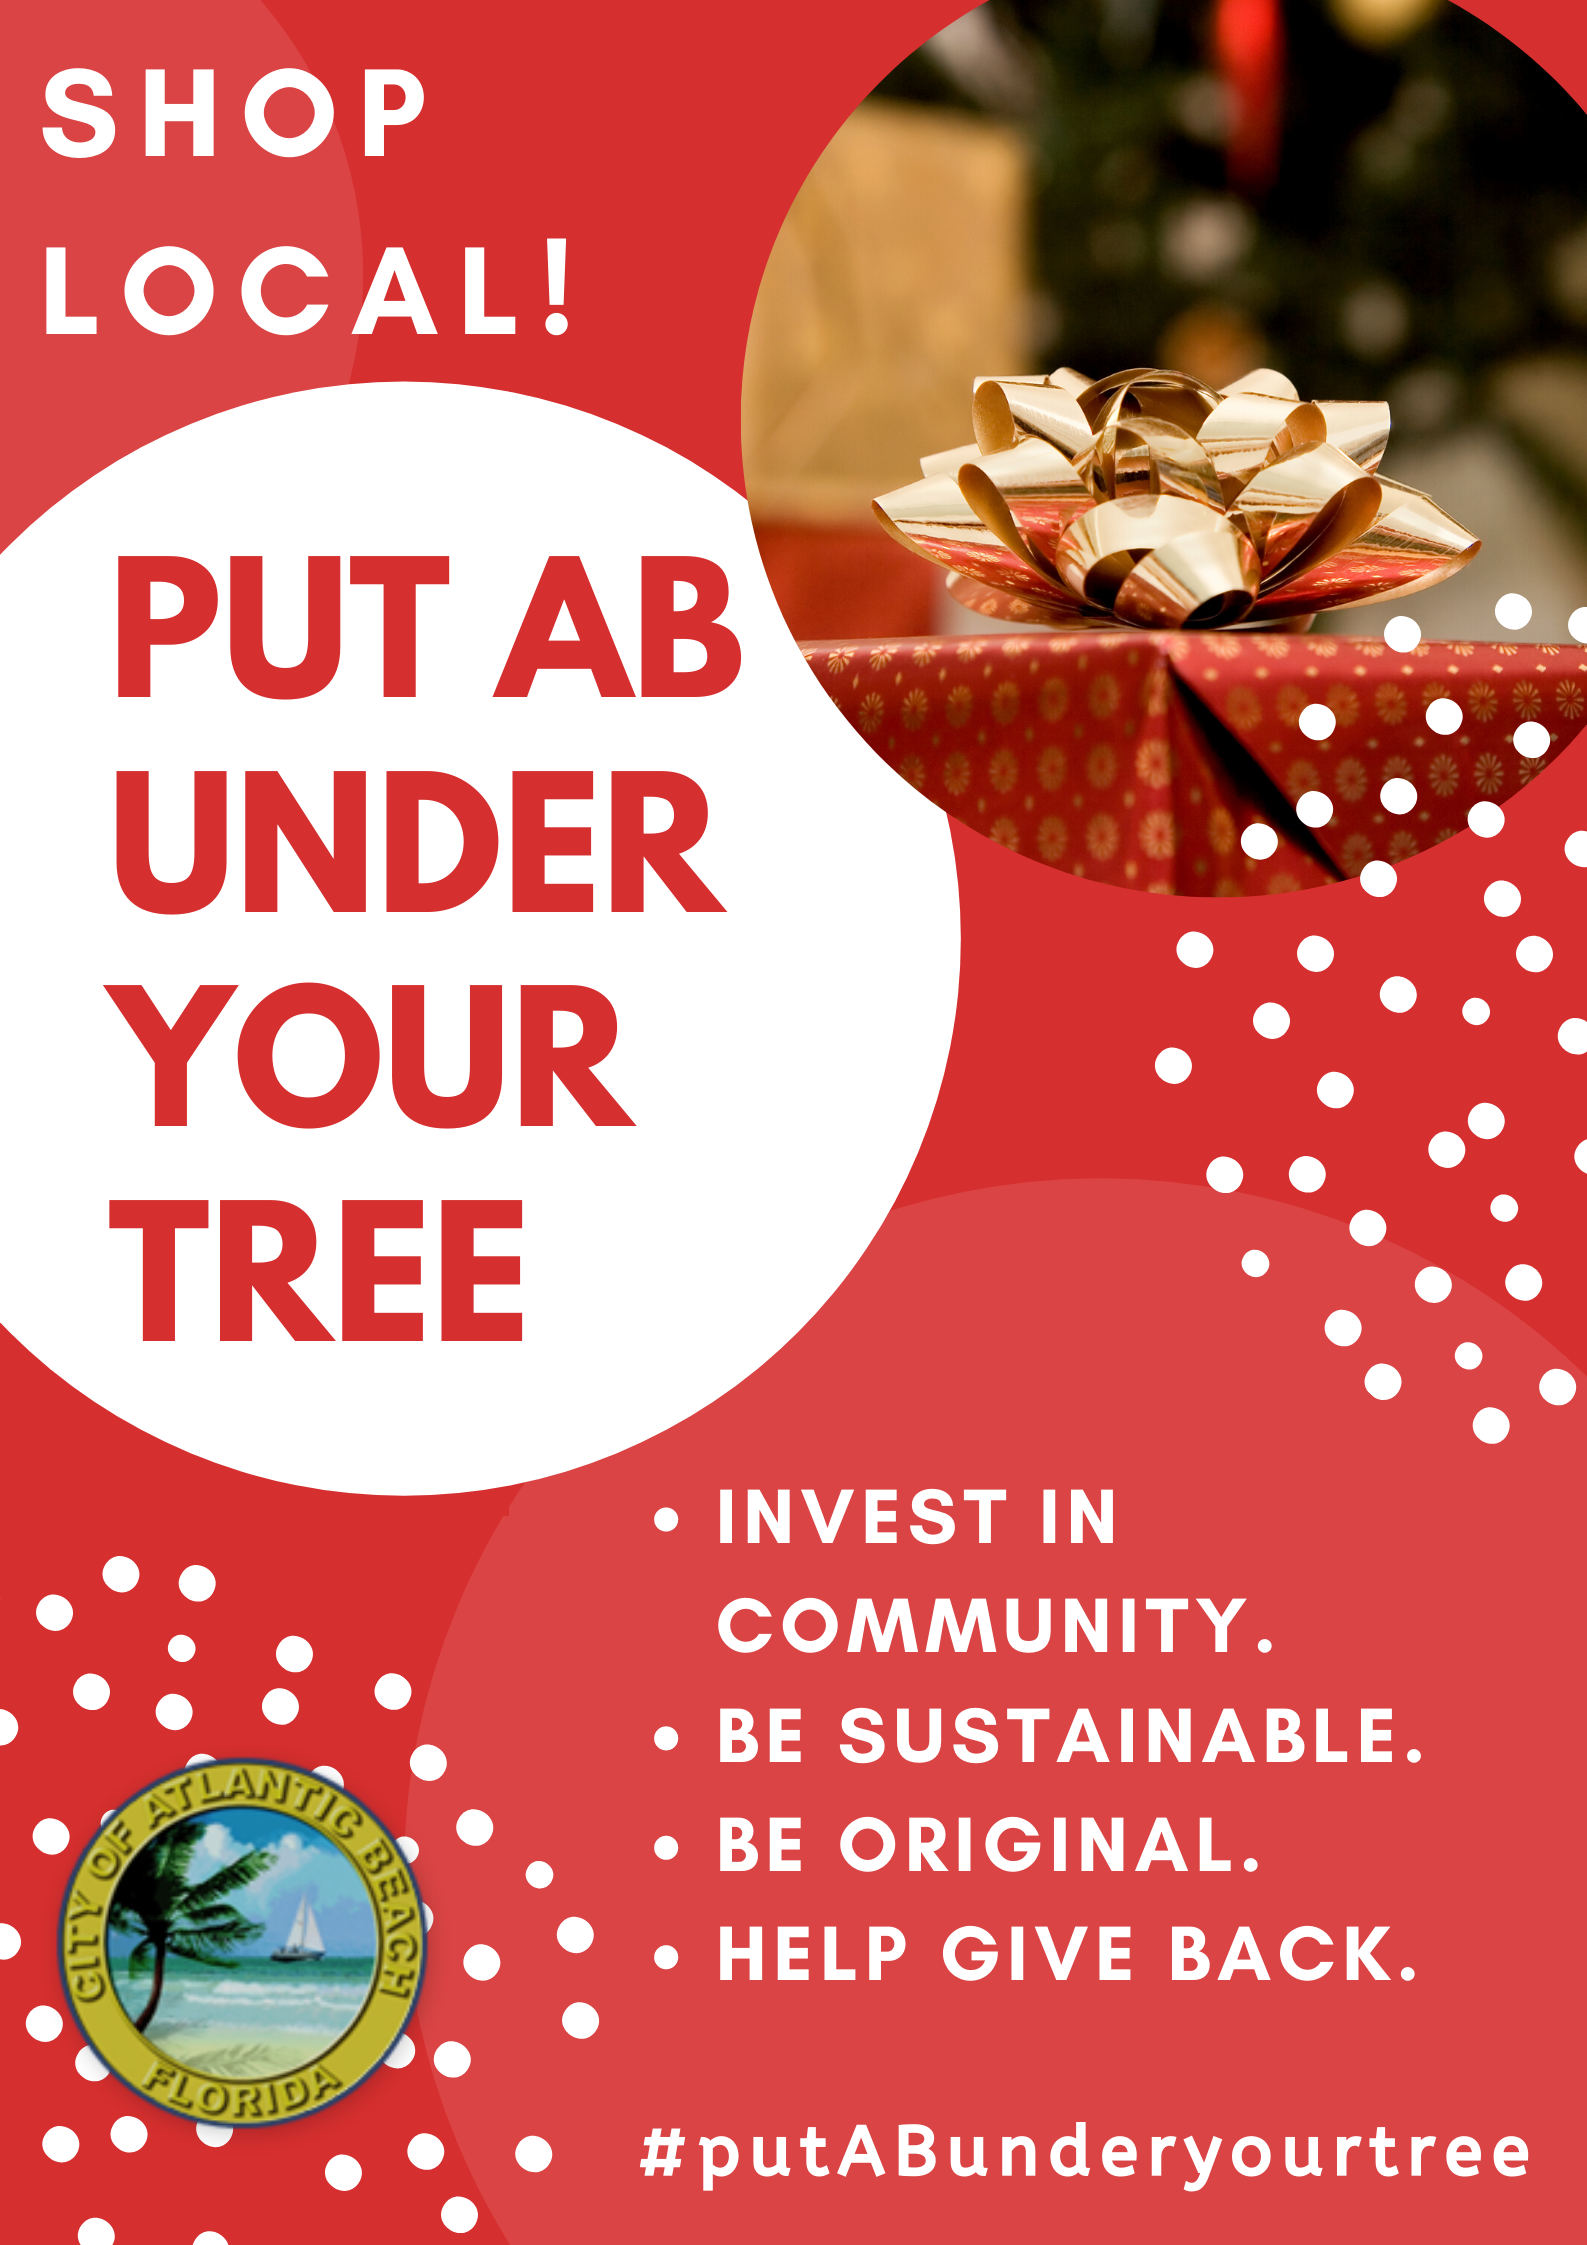 Put AB Under Your Tree November 2019 White Hashtag